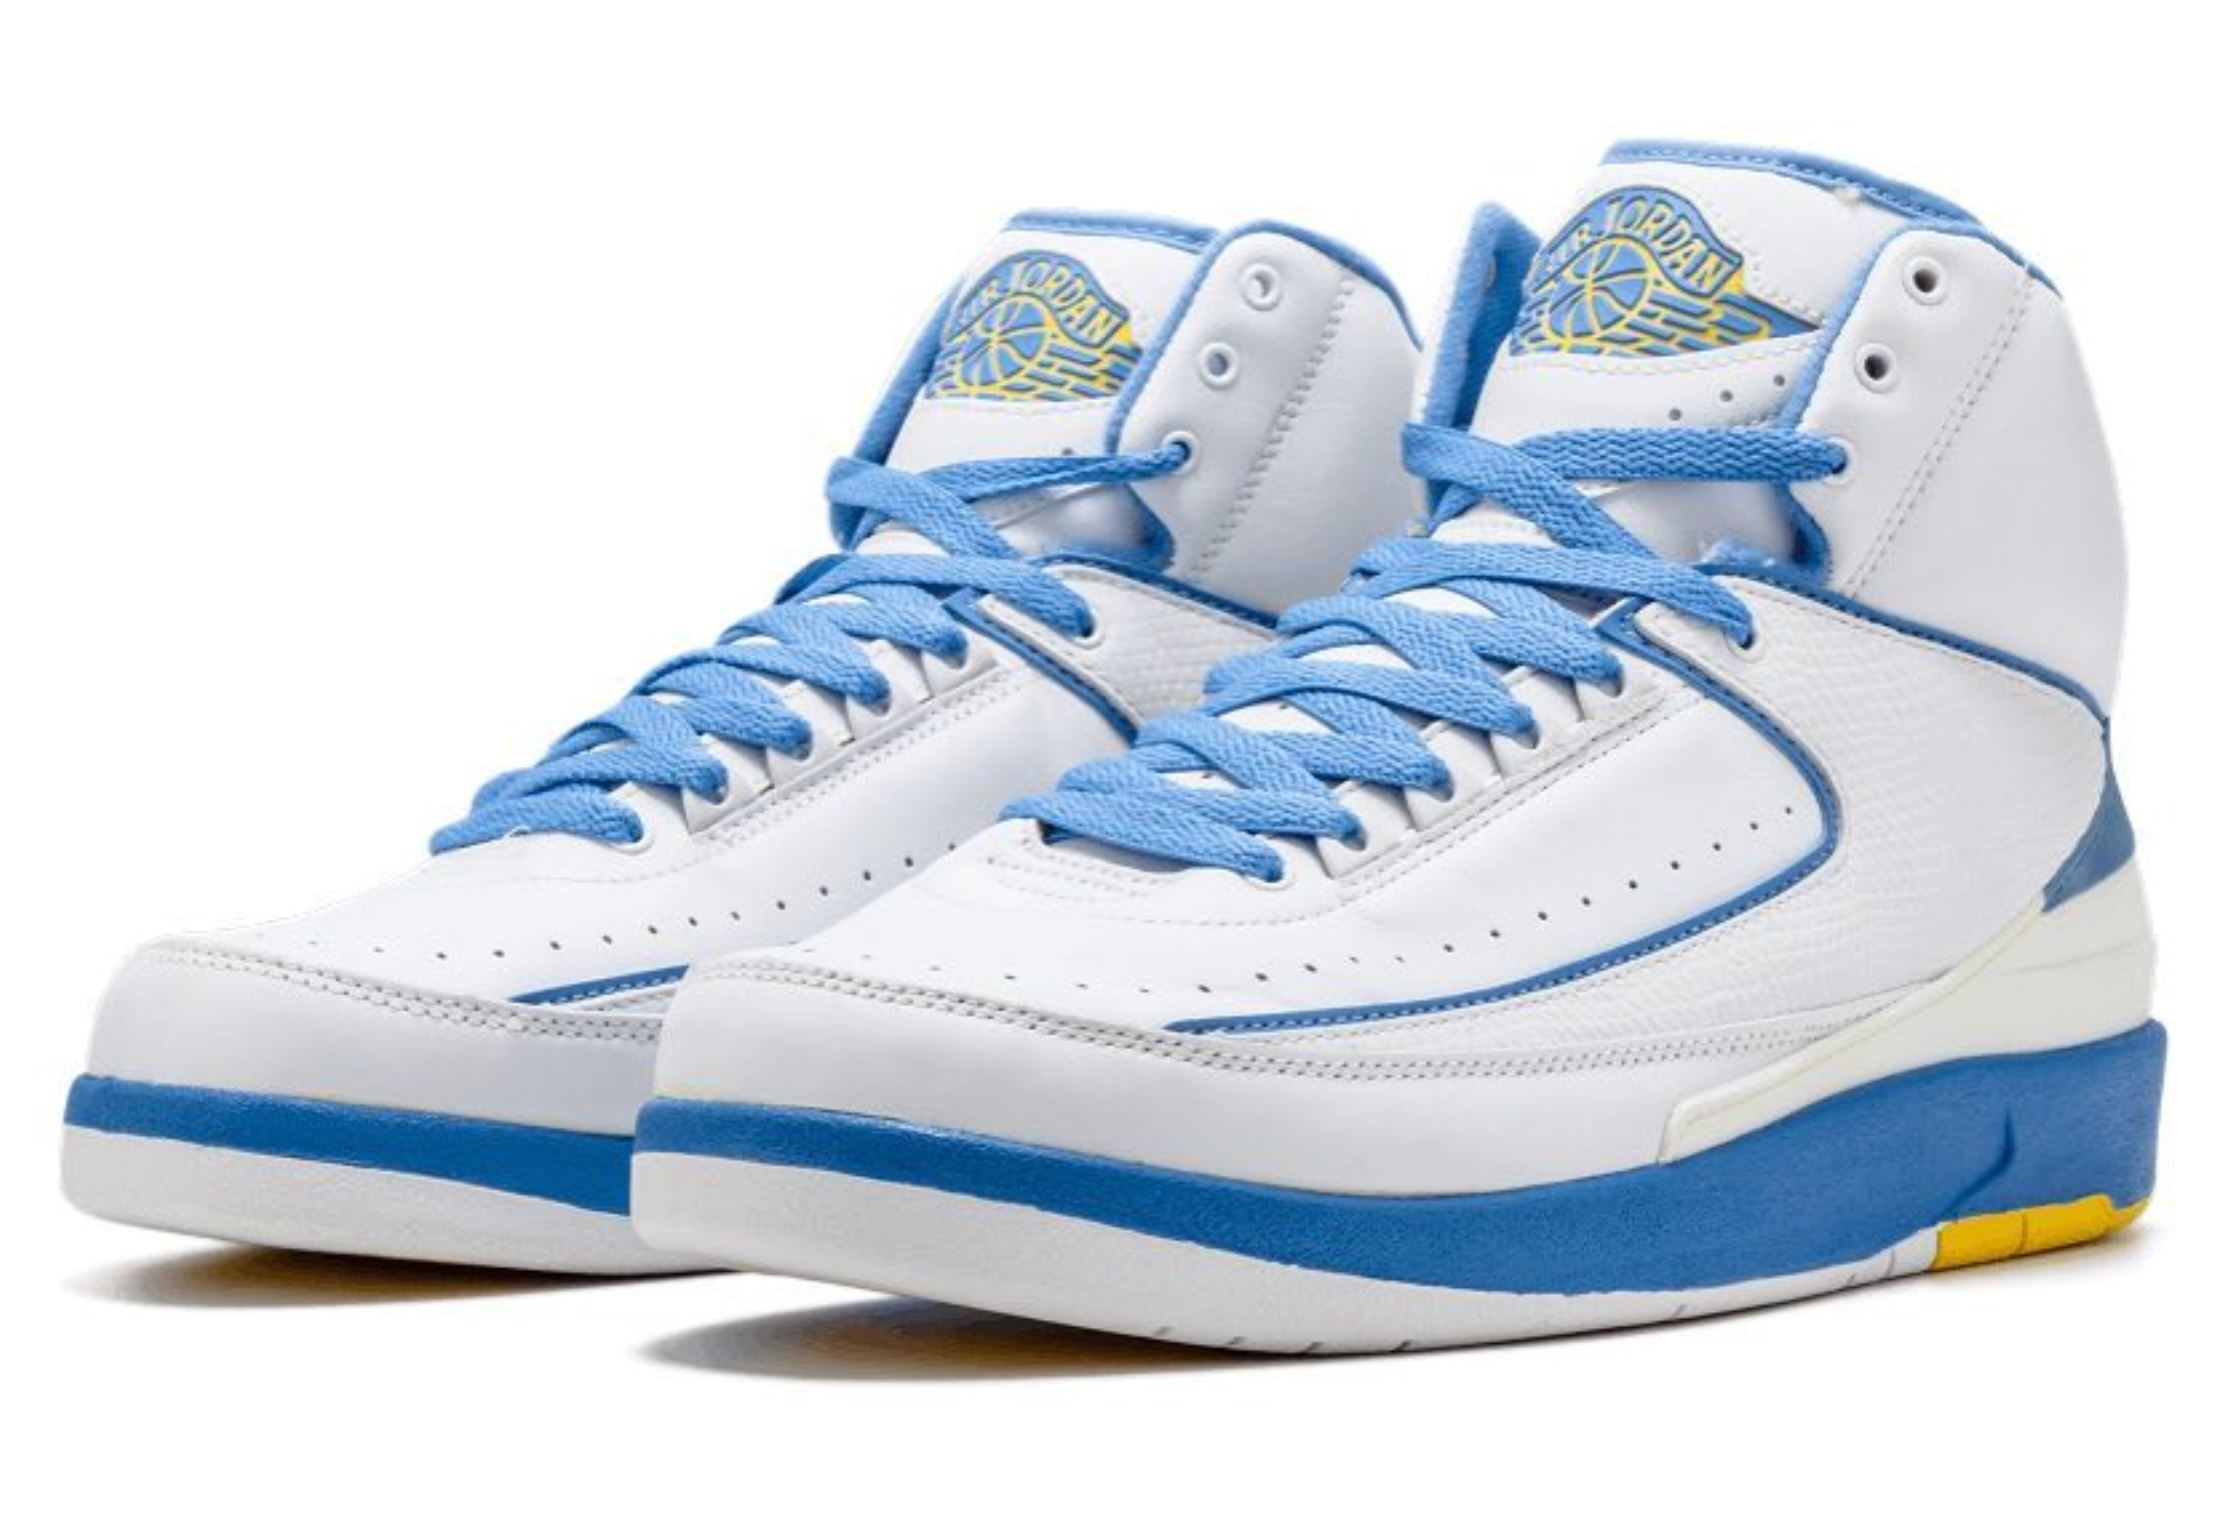 buy popular fc957 e1729 Carmelo Anthony's Air Jordan 2 'Melo' Will Return Next Month ...